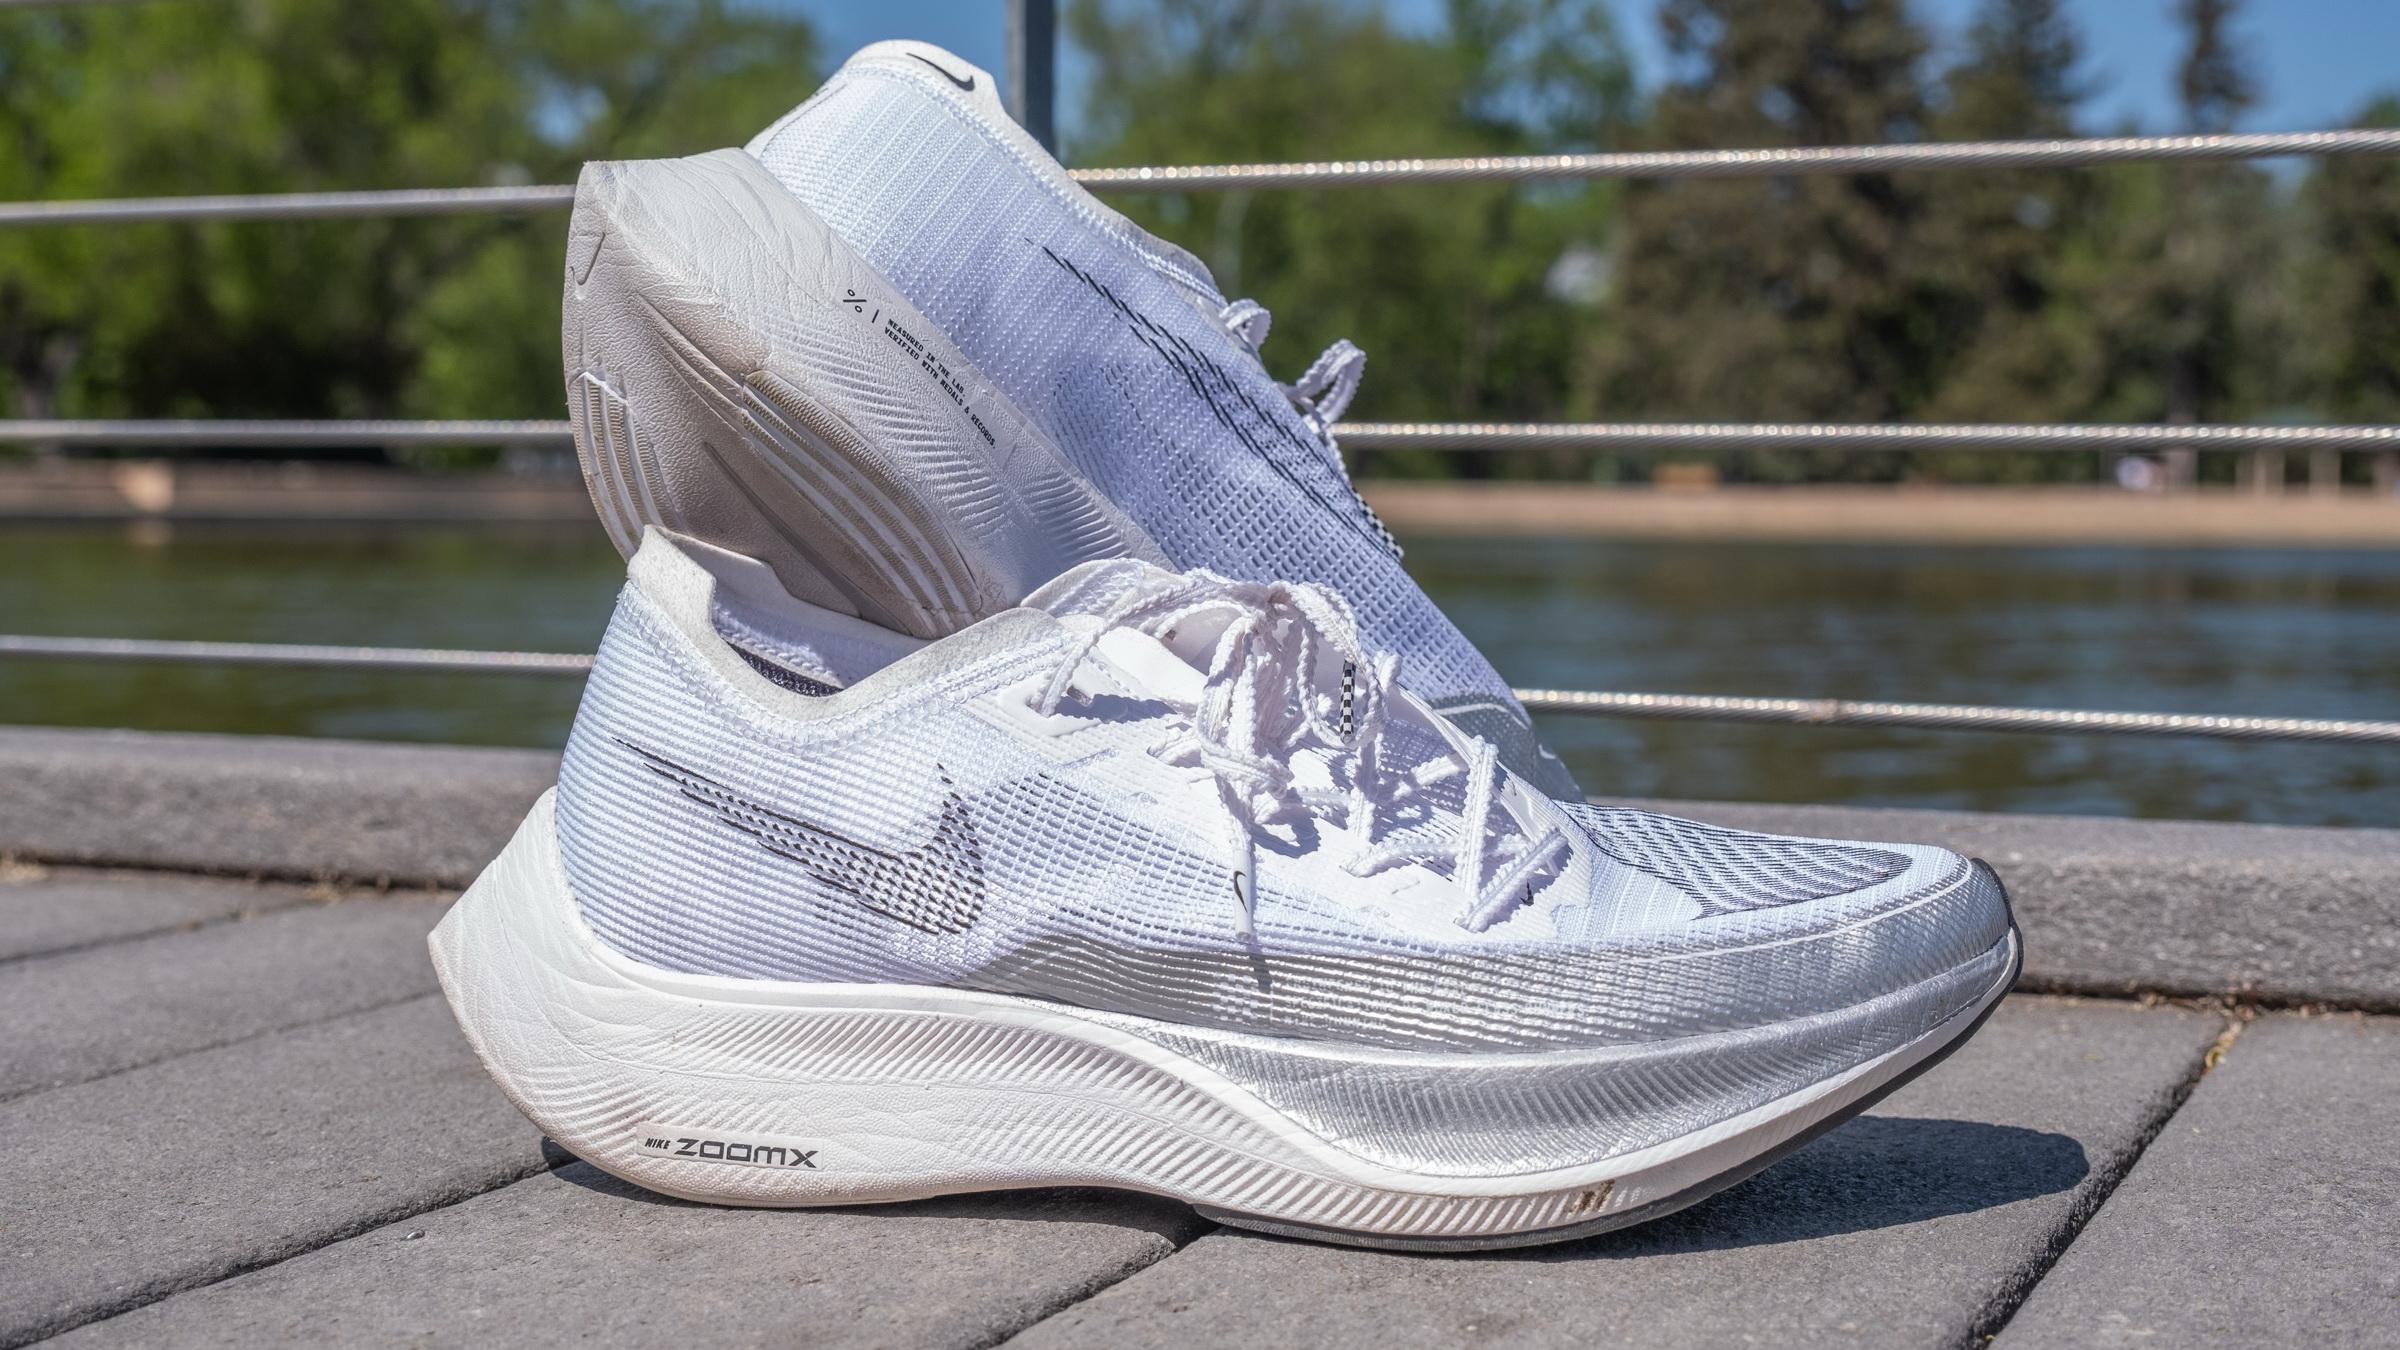 10 Best White Nike Running Shoes in 2021